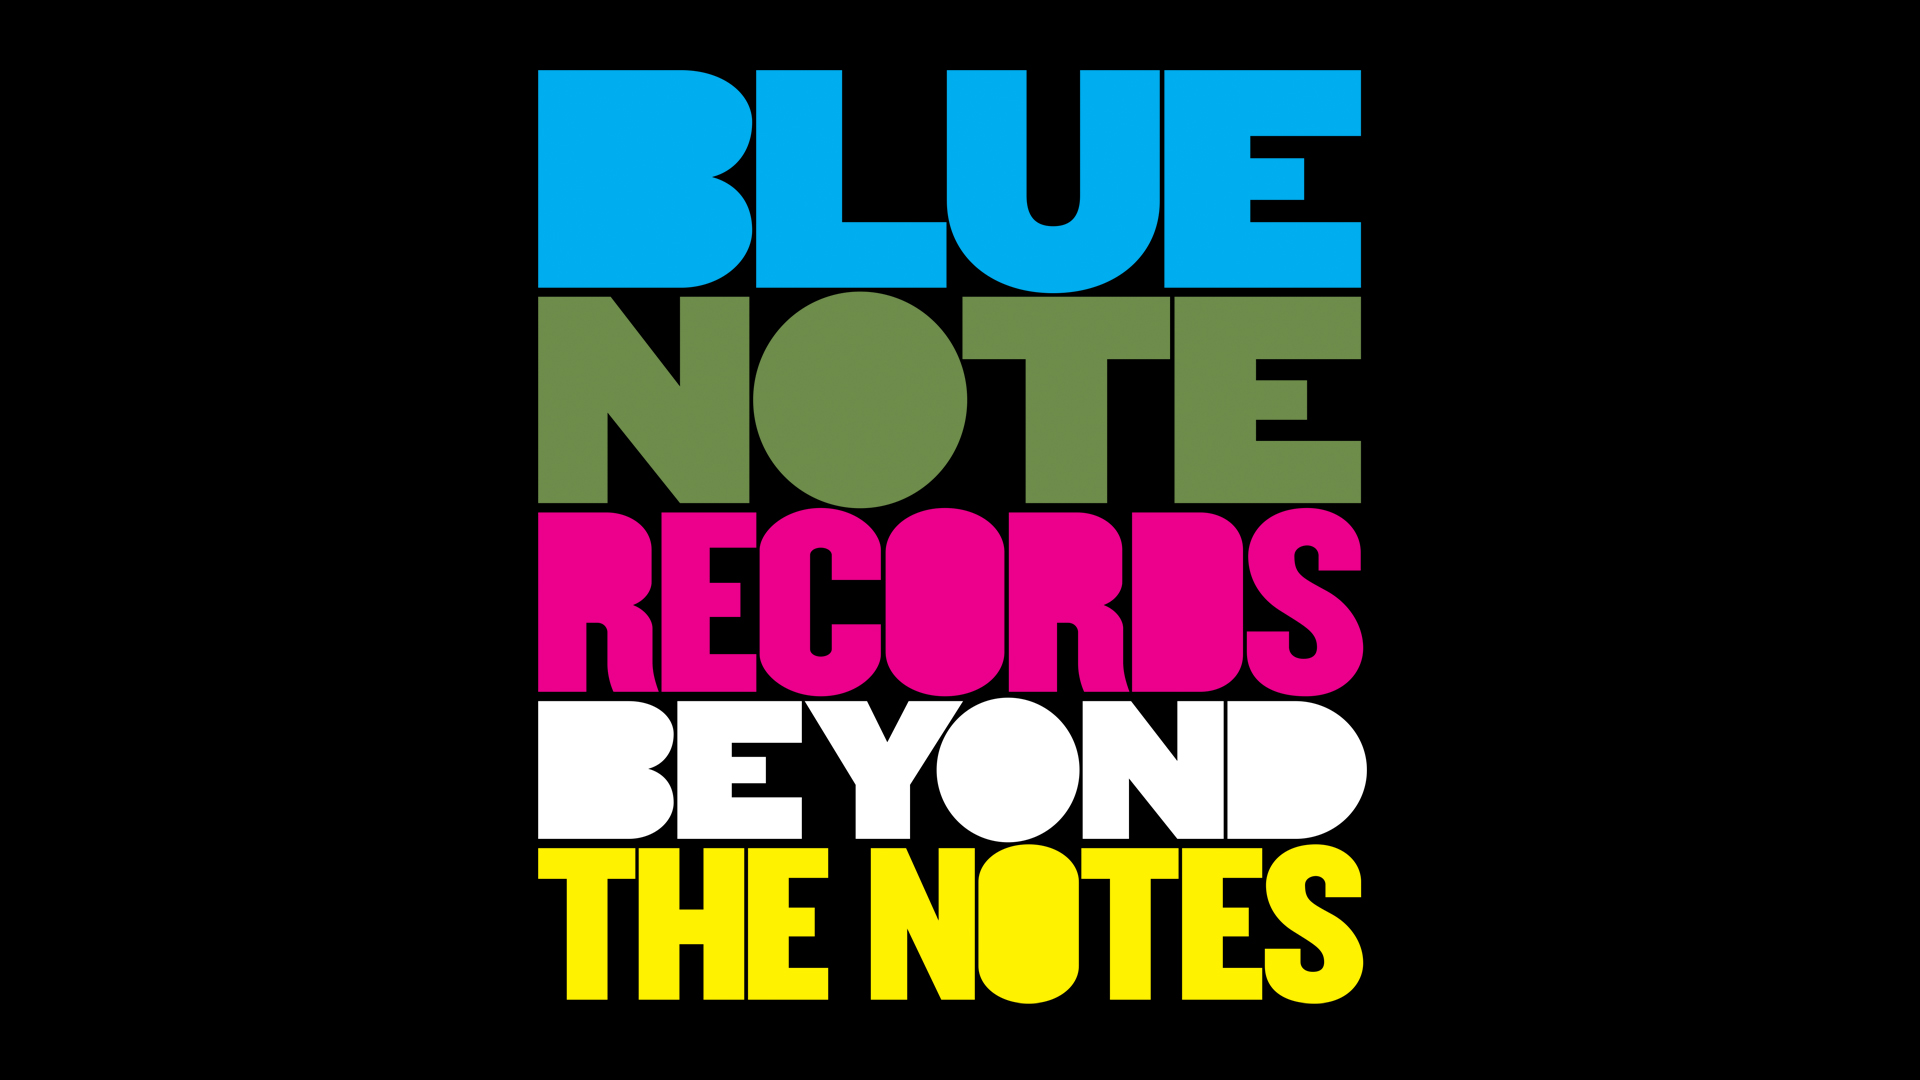 Blue Note Records Beyond The Notes [OV]